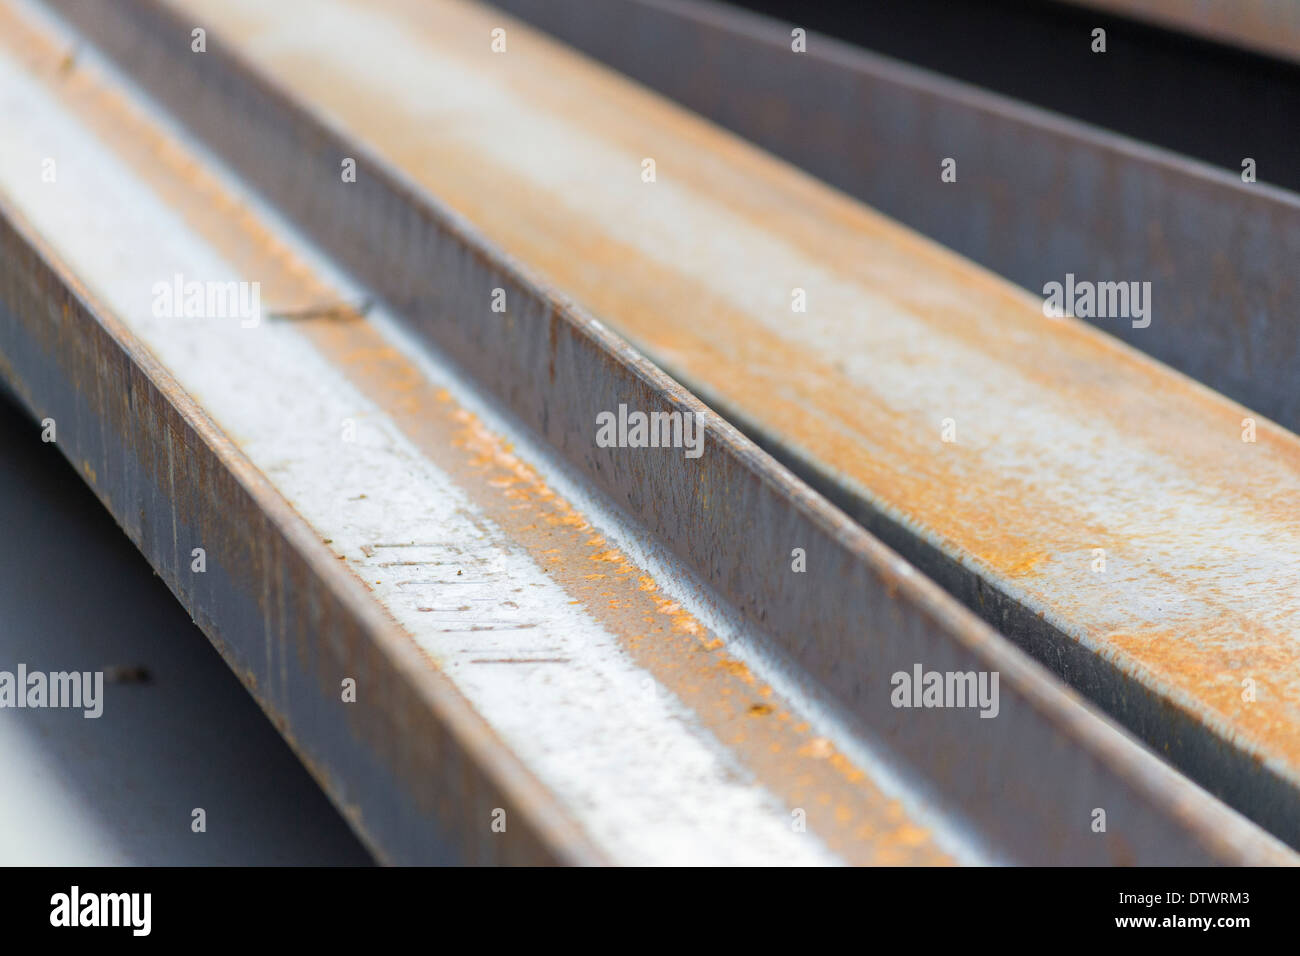 Abstract Industrial Beam Construction Stockfotos & Abstract ...